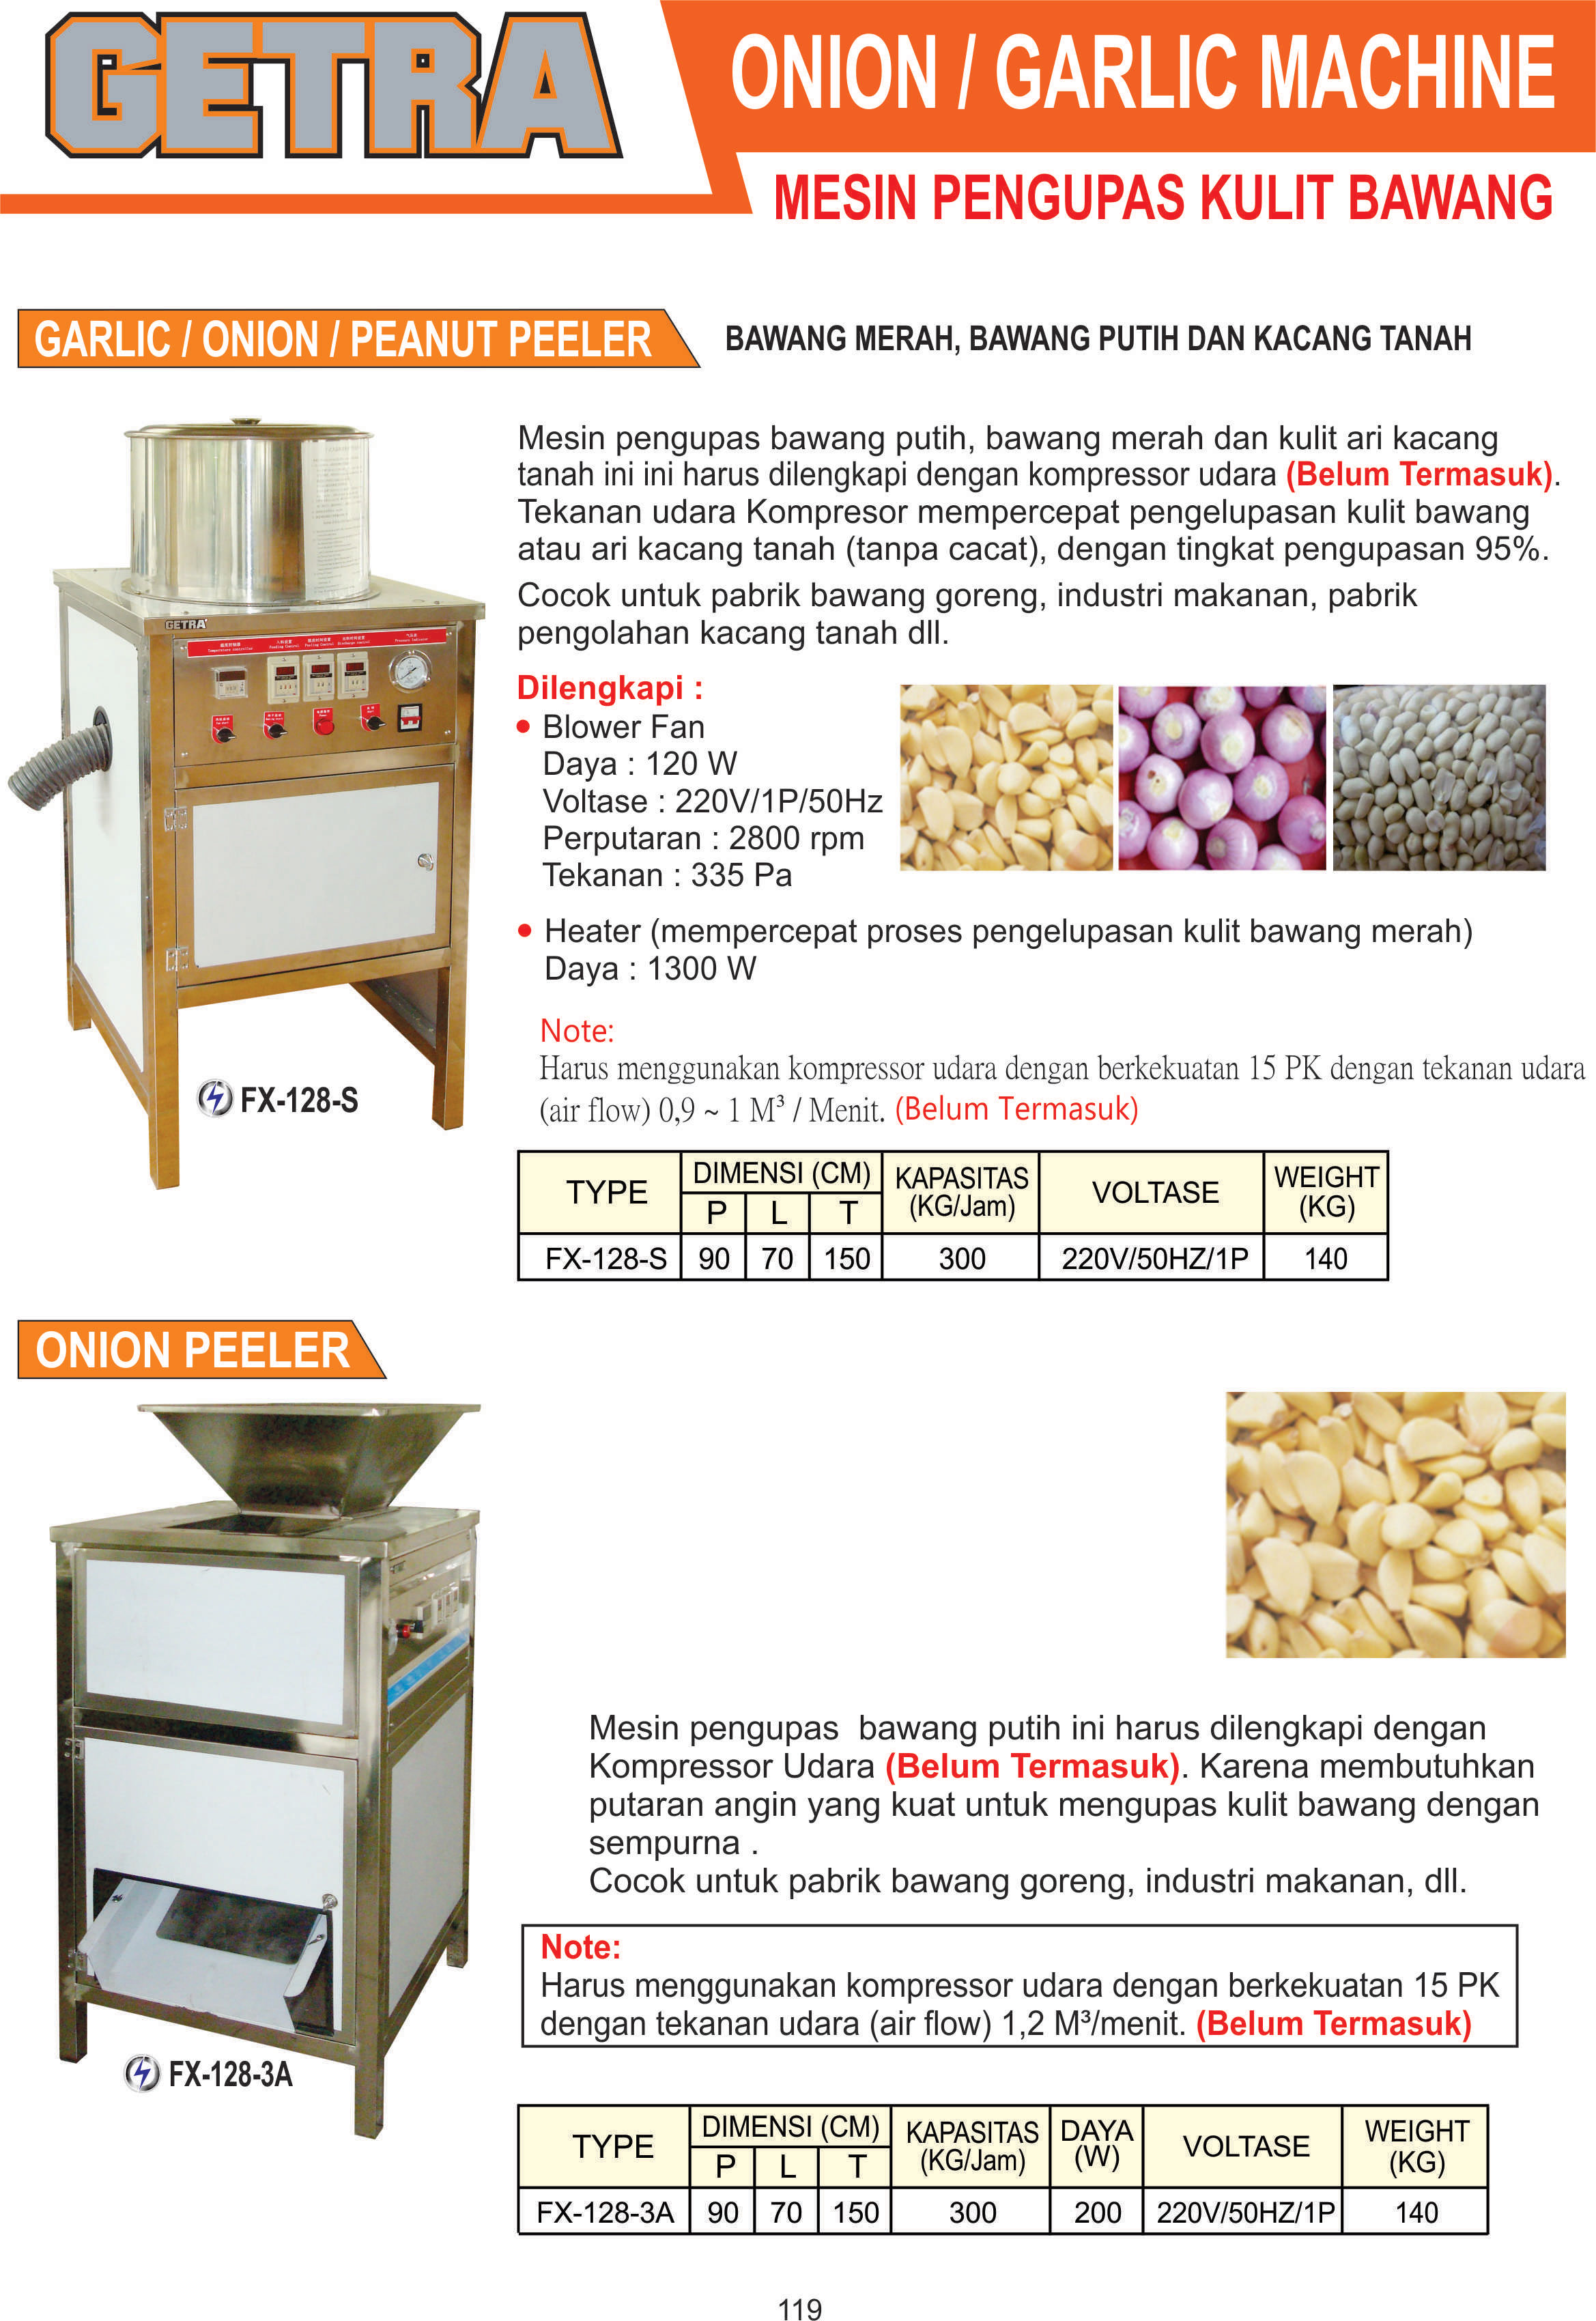 75_Onion-atau-Garlic-Machine